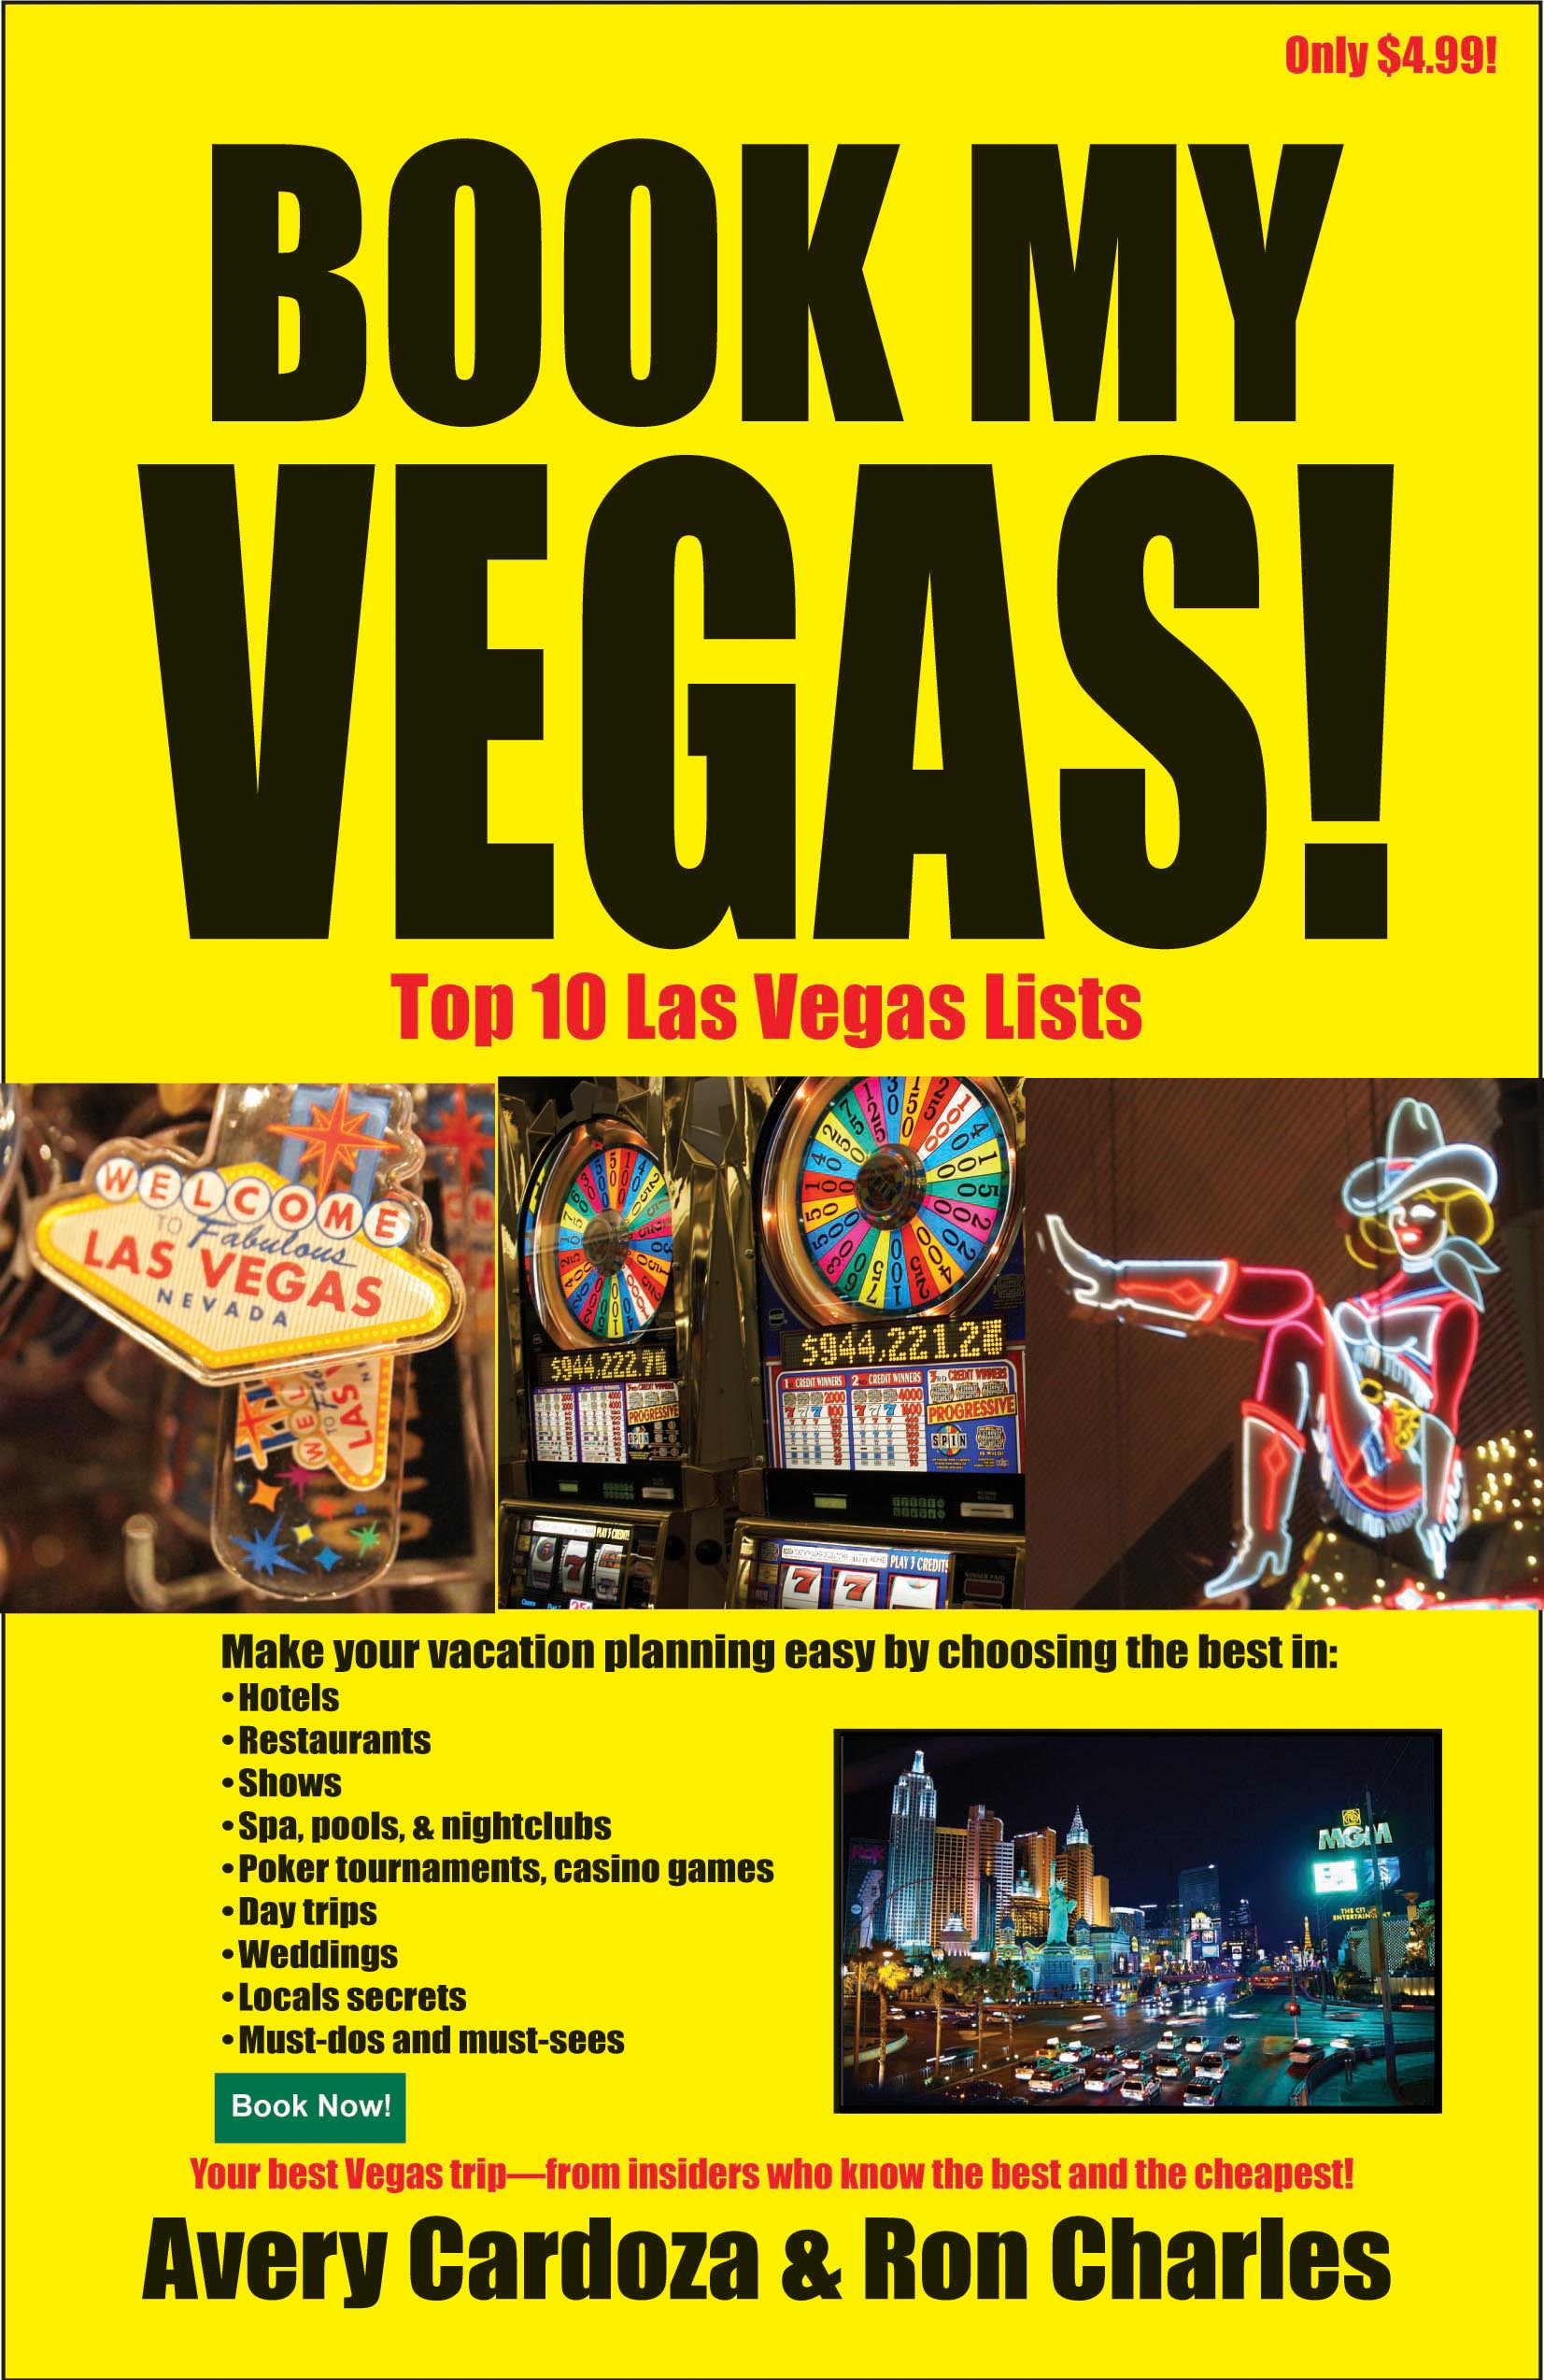 Book-my-vegas!-9781580423229_hr